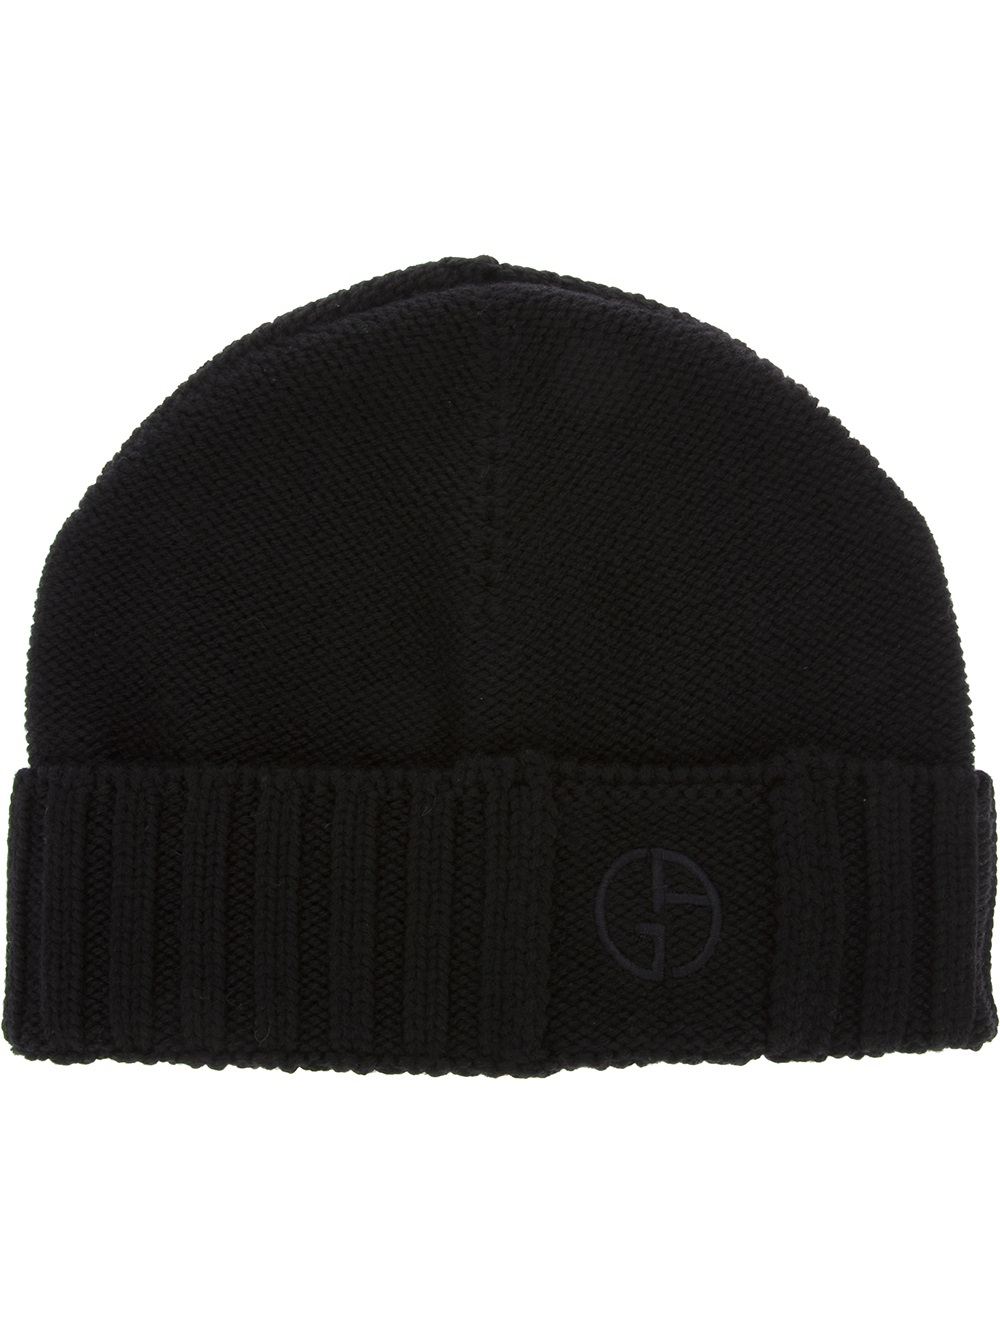 Lyst - Giorgio Armani Ribbed Wool Beanie Hat in Black for Men 79297e9d632